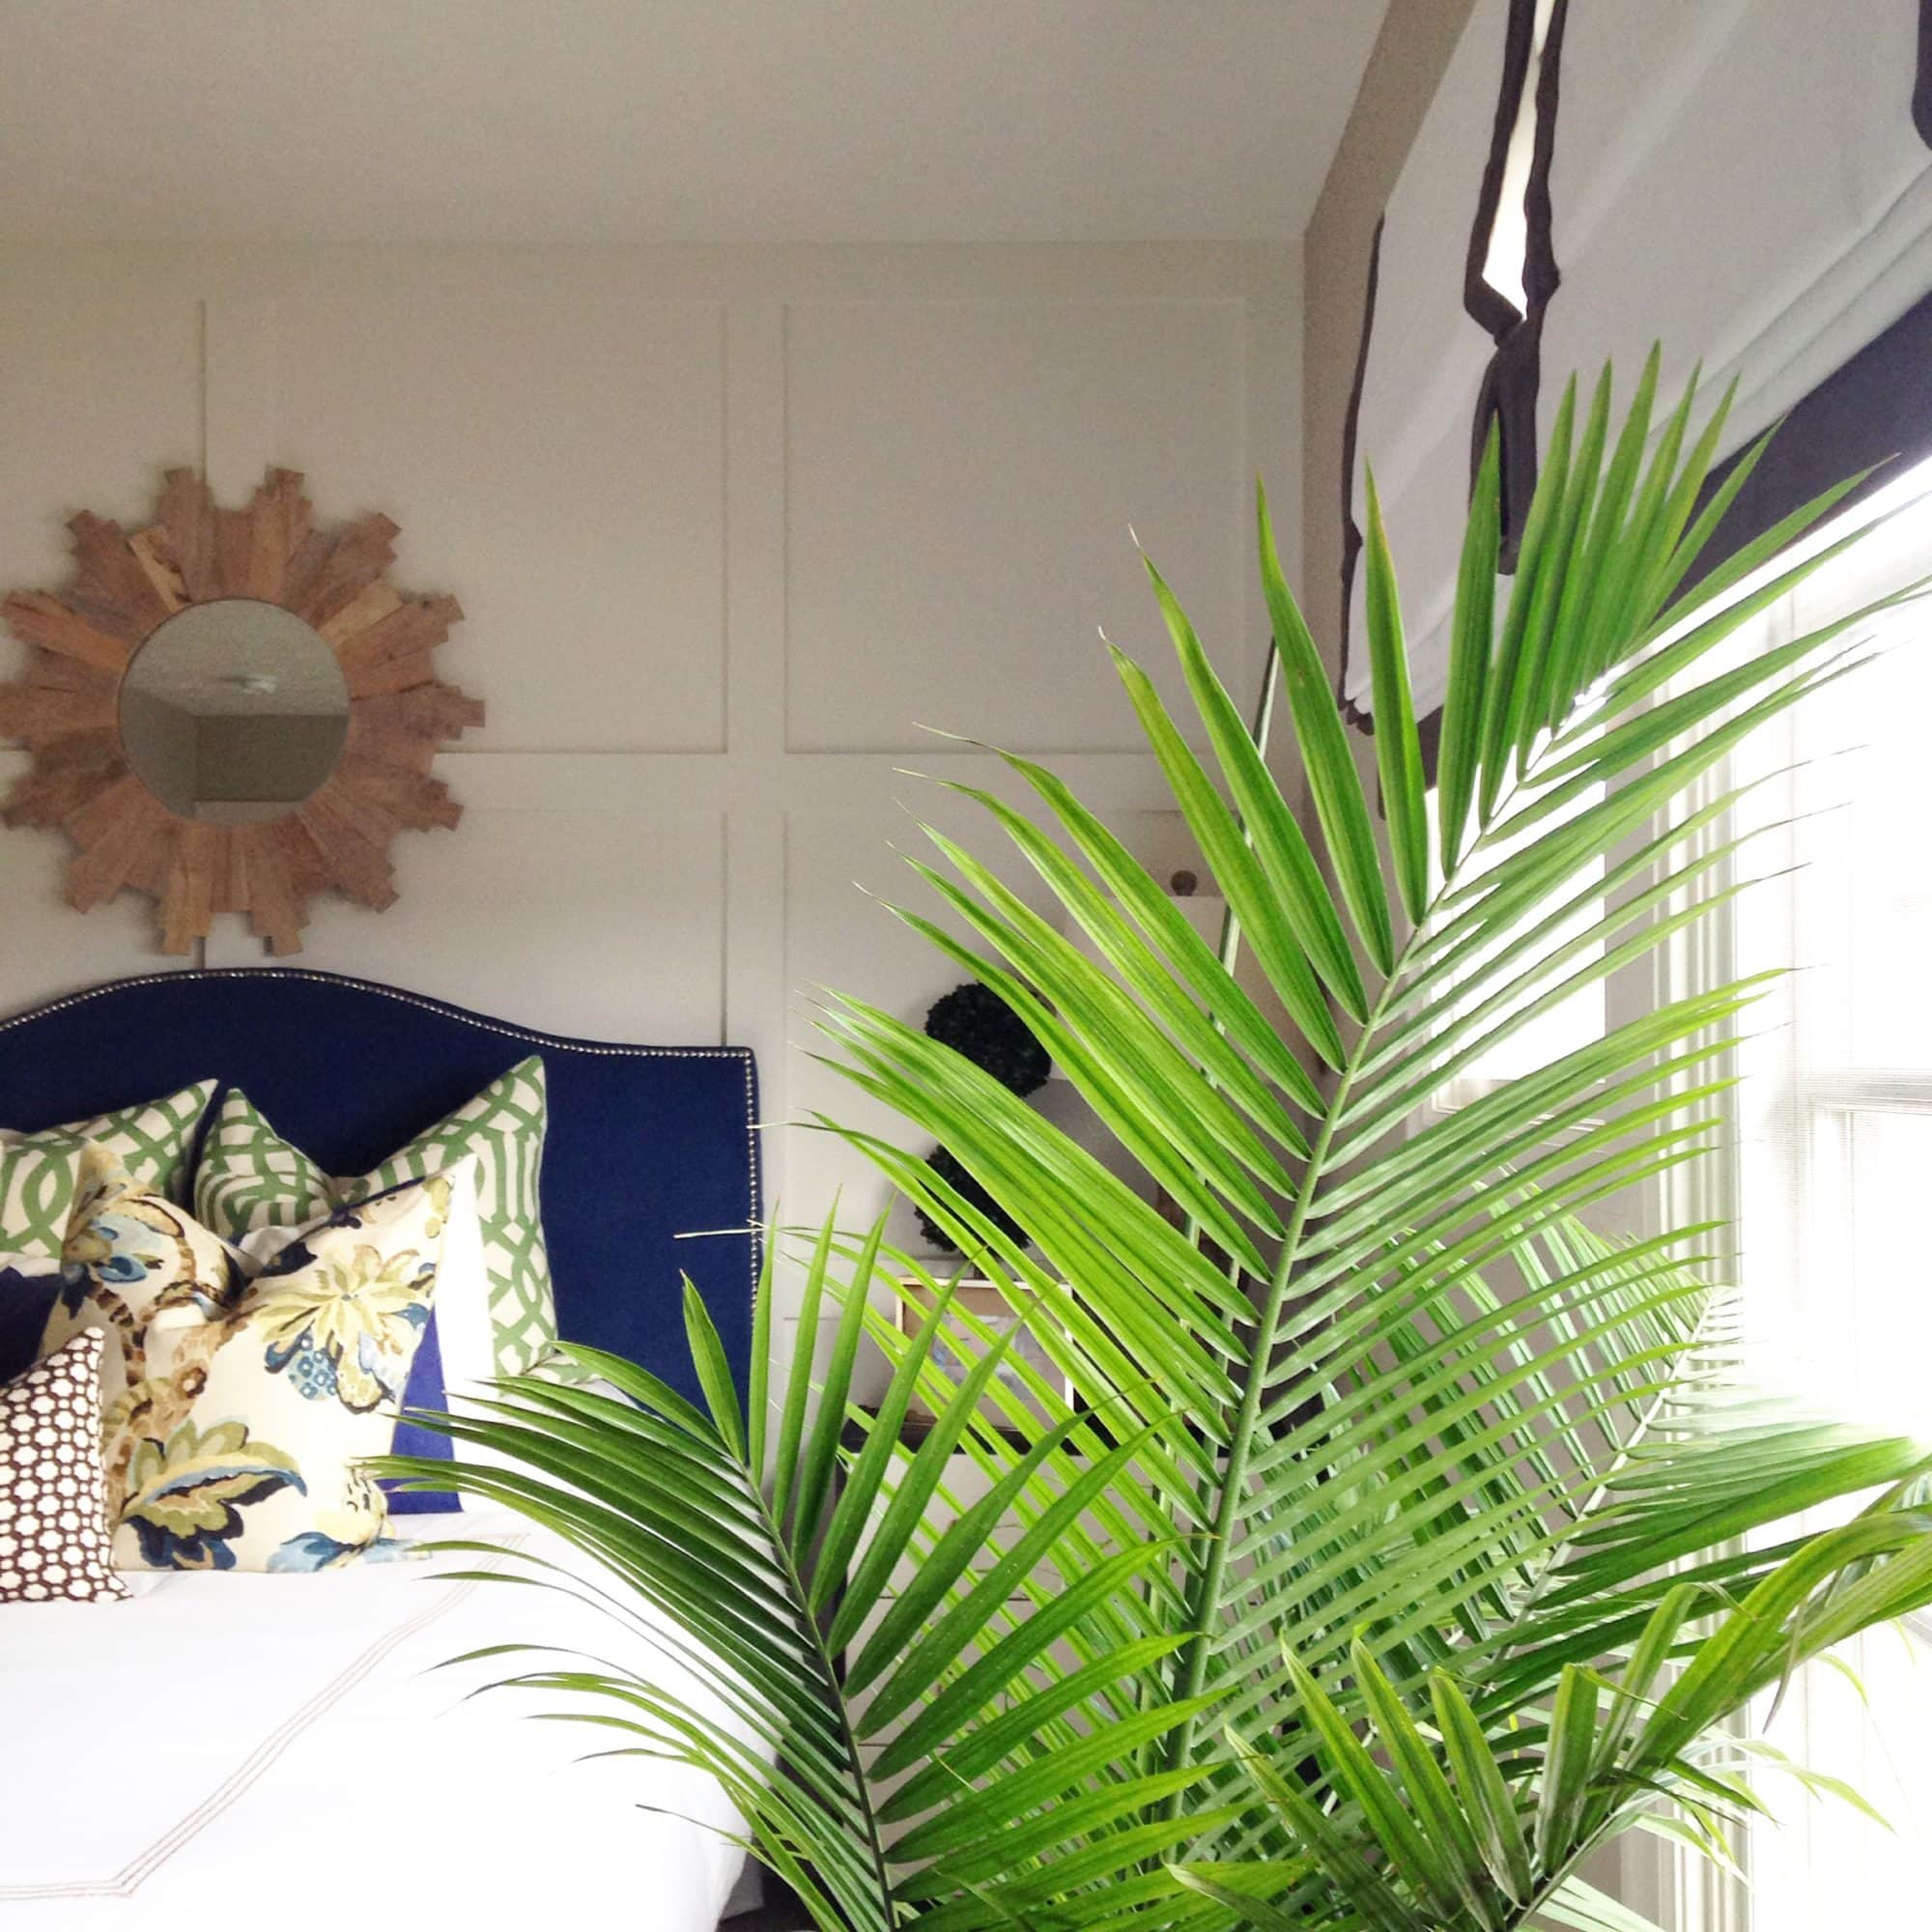 Decorating with palm fronds life on virginia street for Palm tree decorations for the home